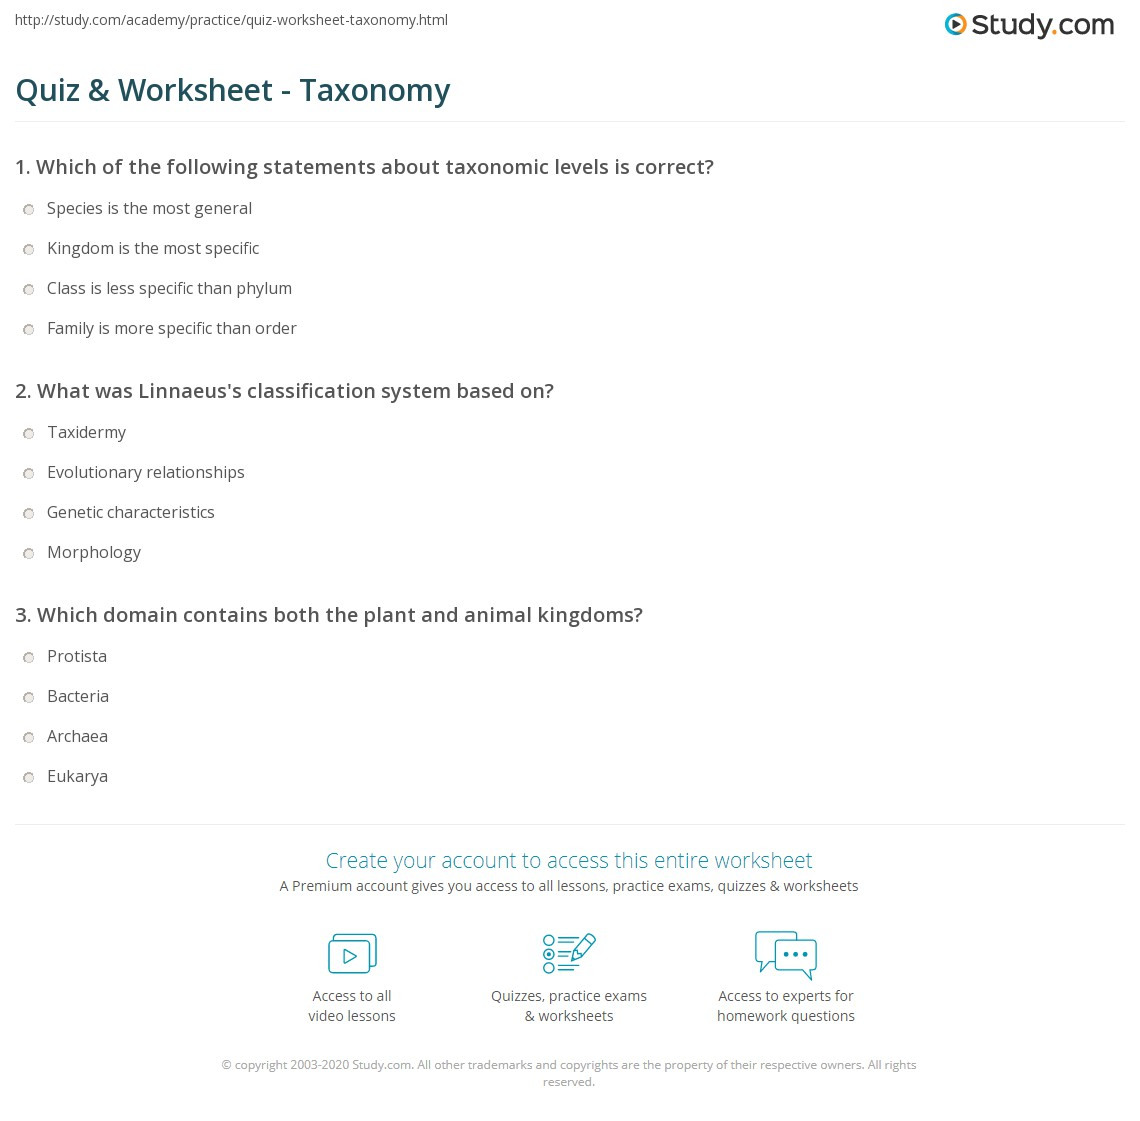 Quiz & Worksheet - Taxonomy | Study.com